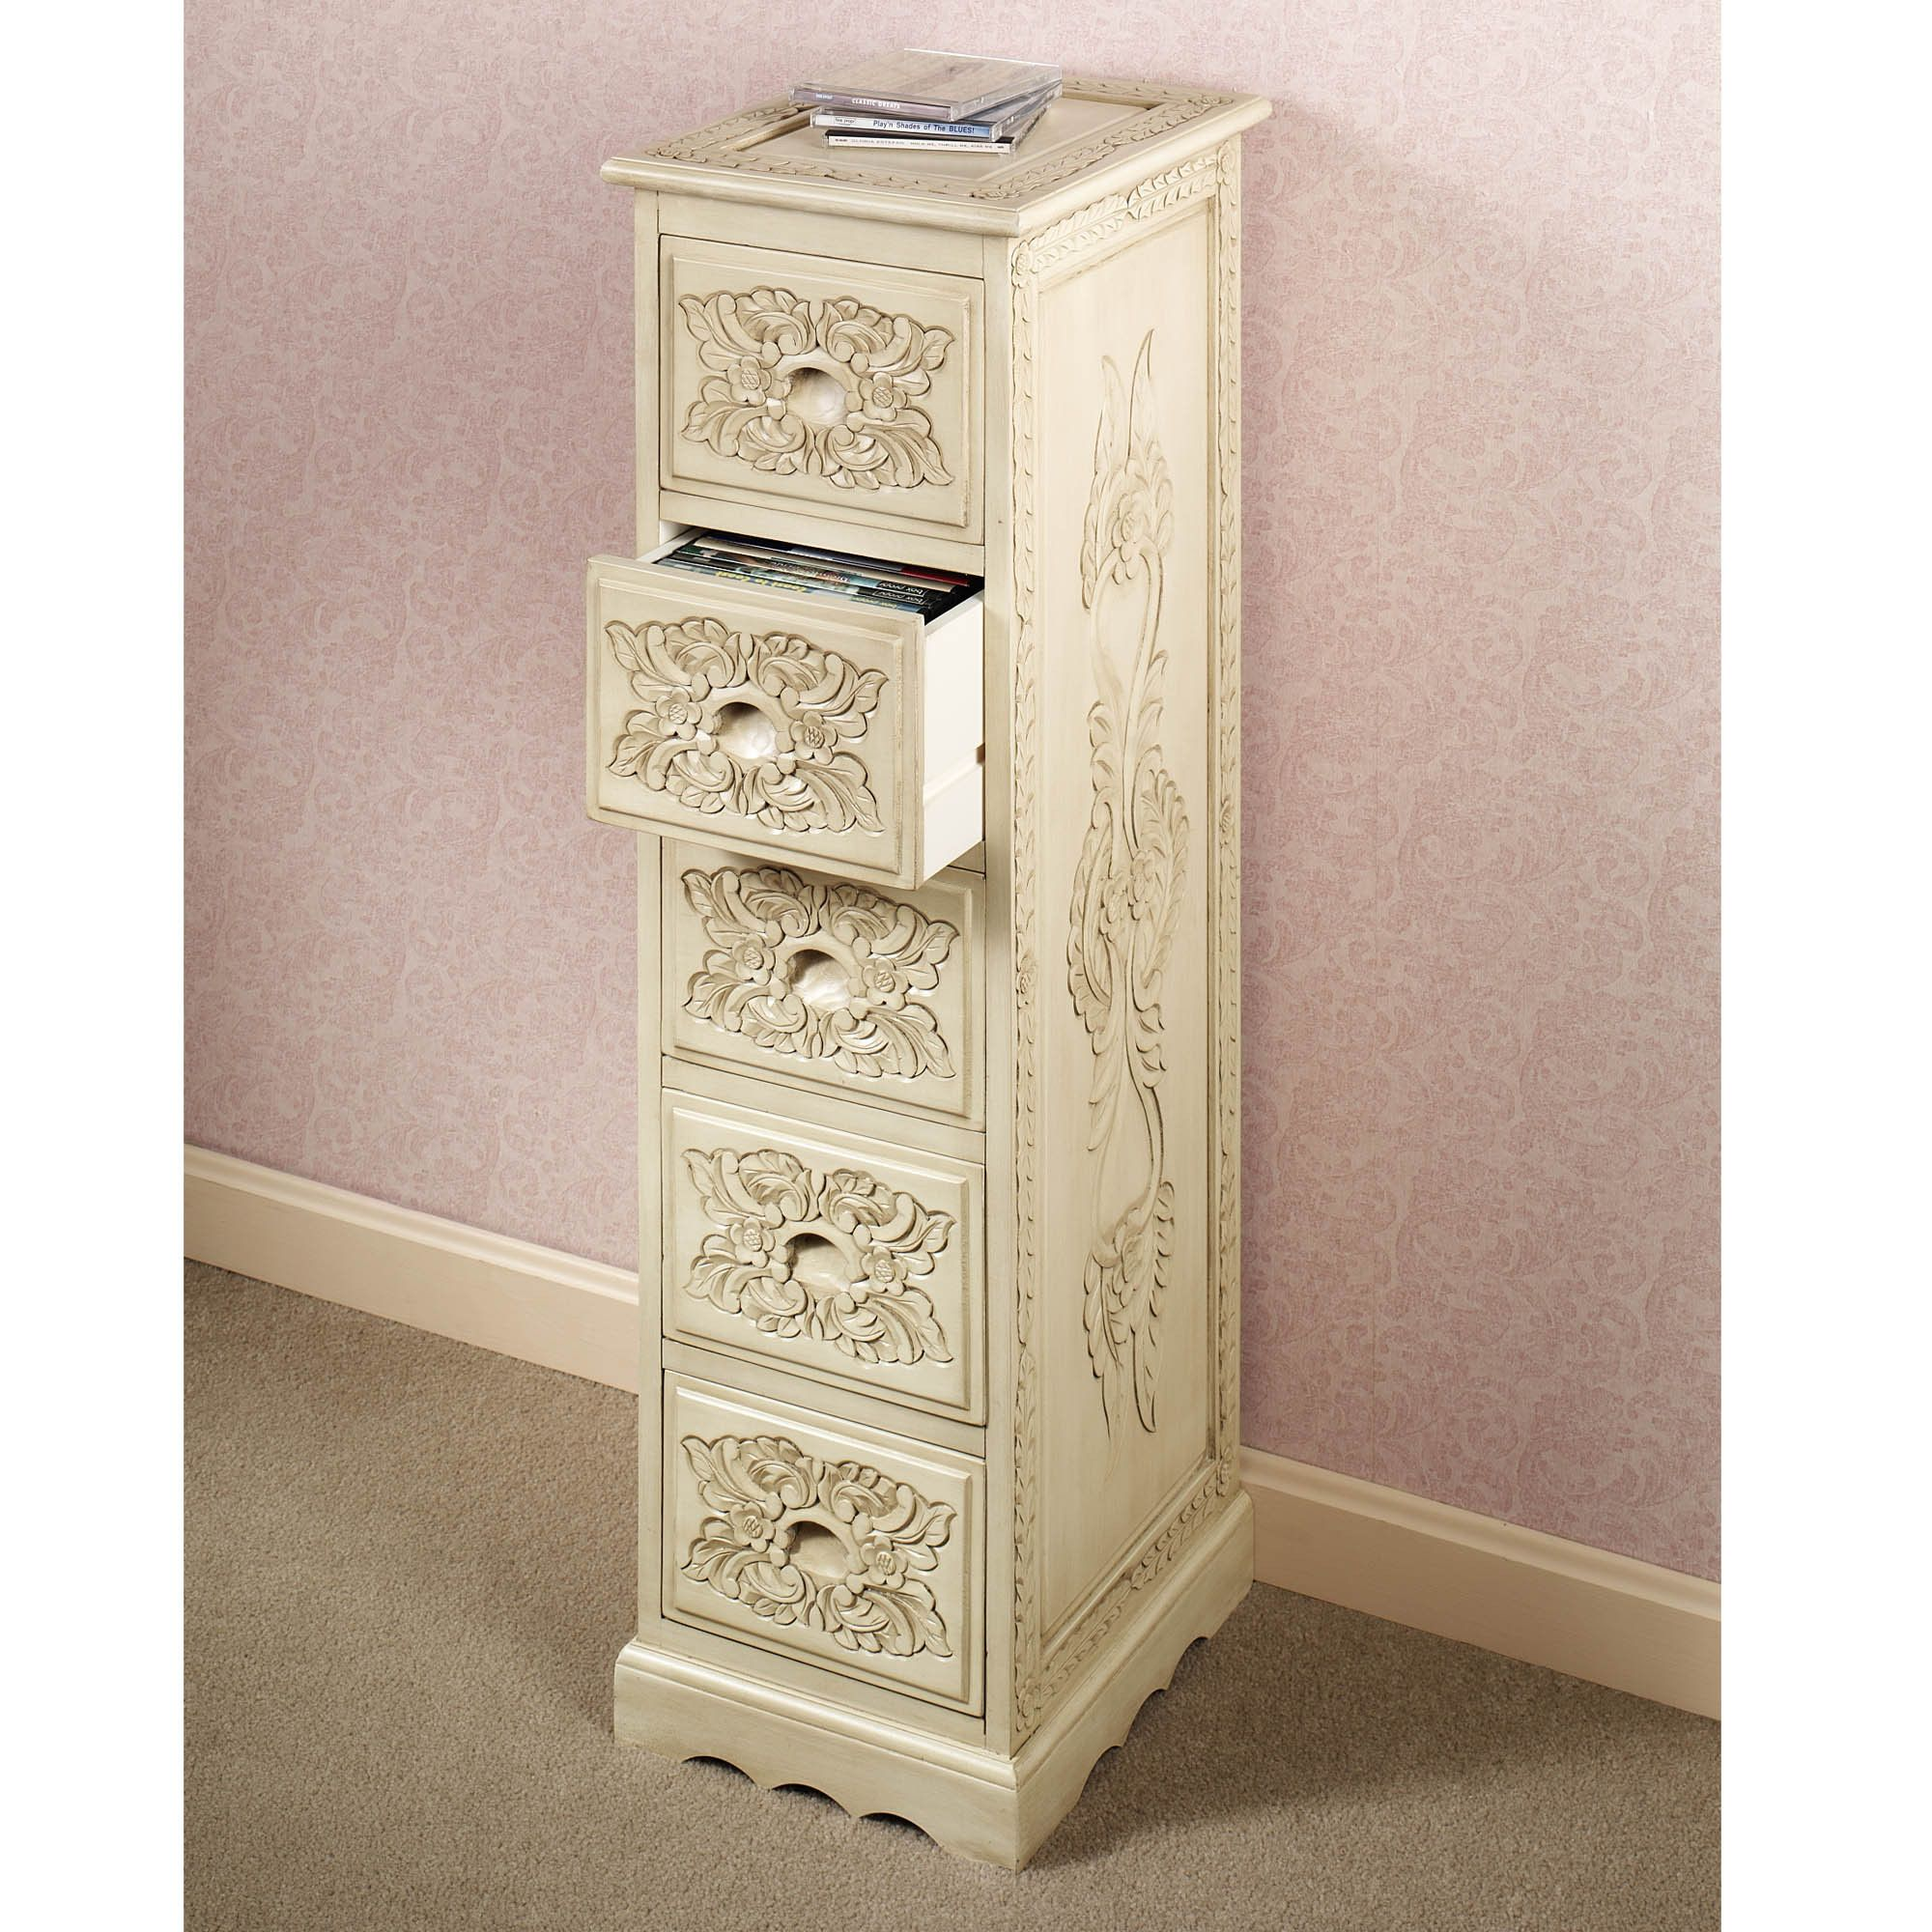 dvd media zoom to drawers everett hover htm ma productdetail furniture storage console mahogany crosley